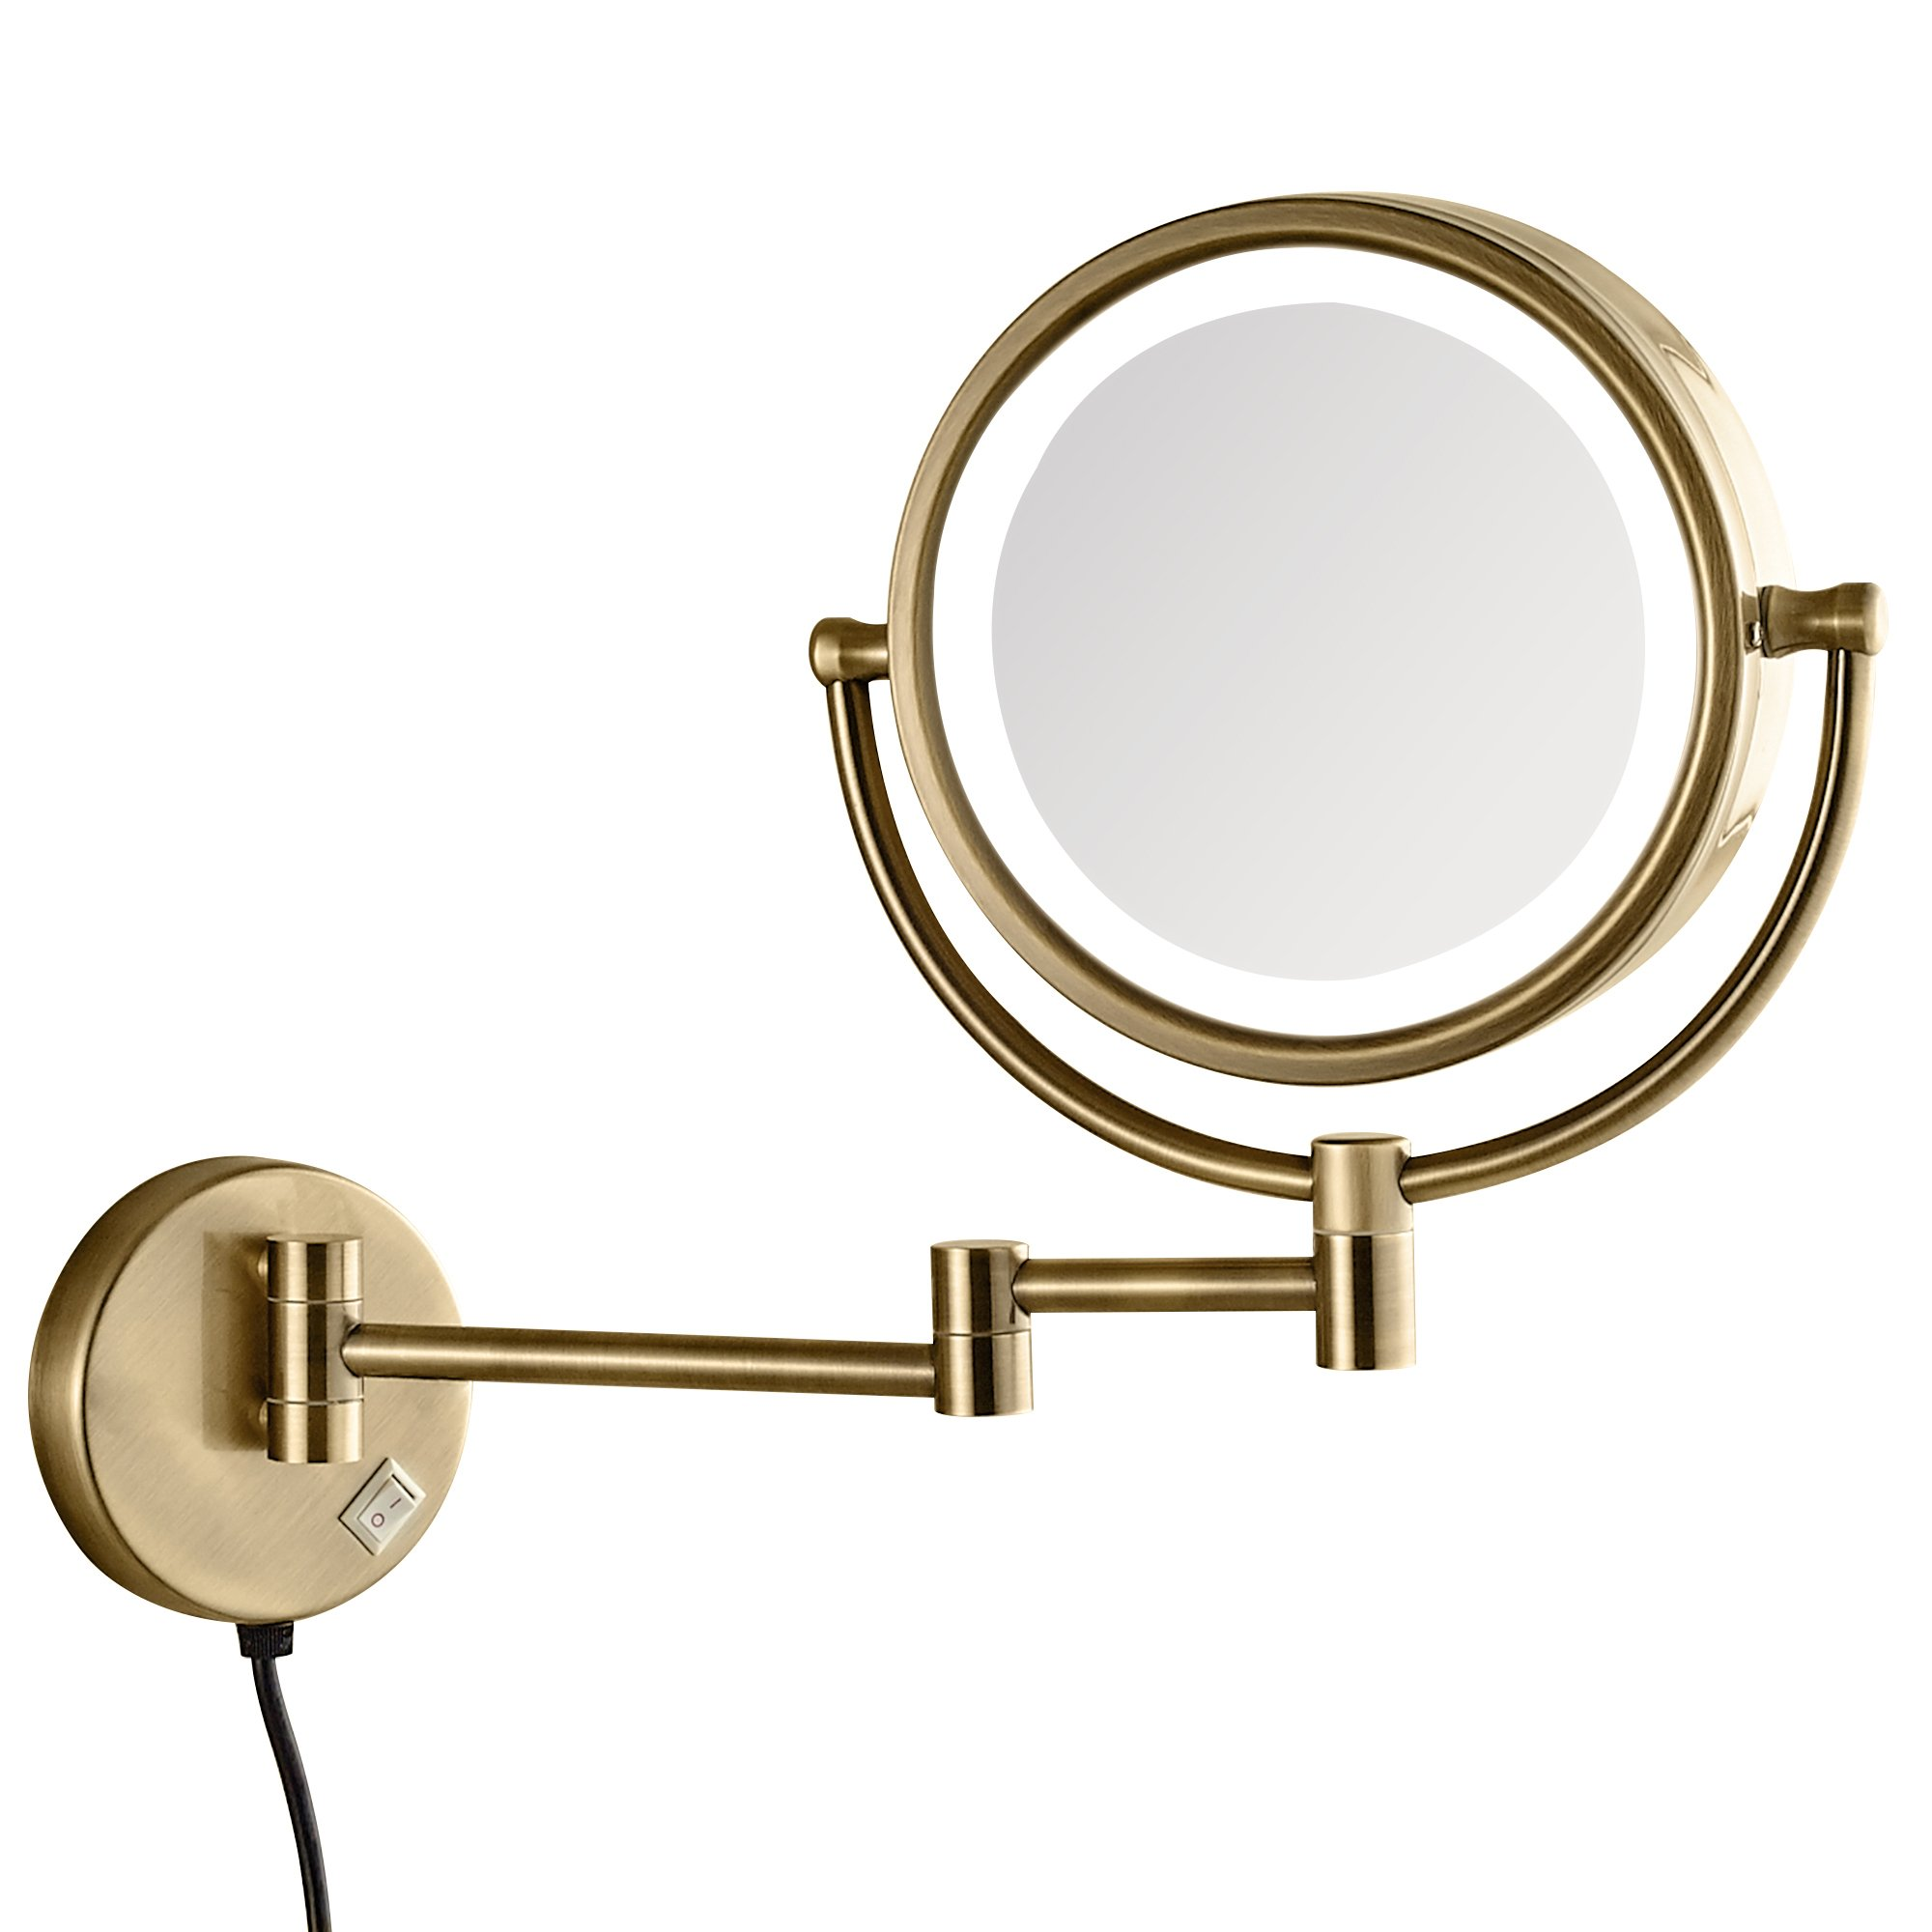 GURUN LED Lighted Makeup Mirror Wall Mounted with 10x Magnification,Antique Brass Finished, 8.5 Inch, BRASS,M1809DK(8.5in,10x)